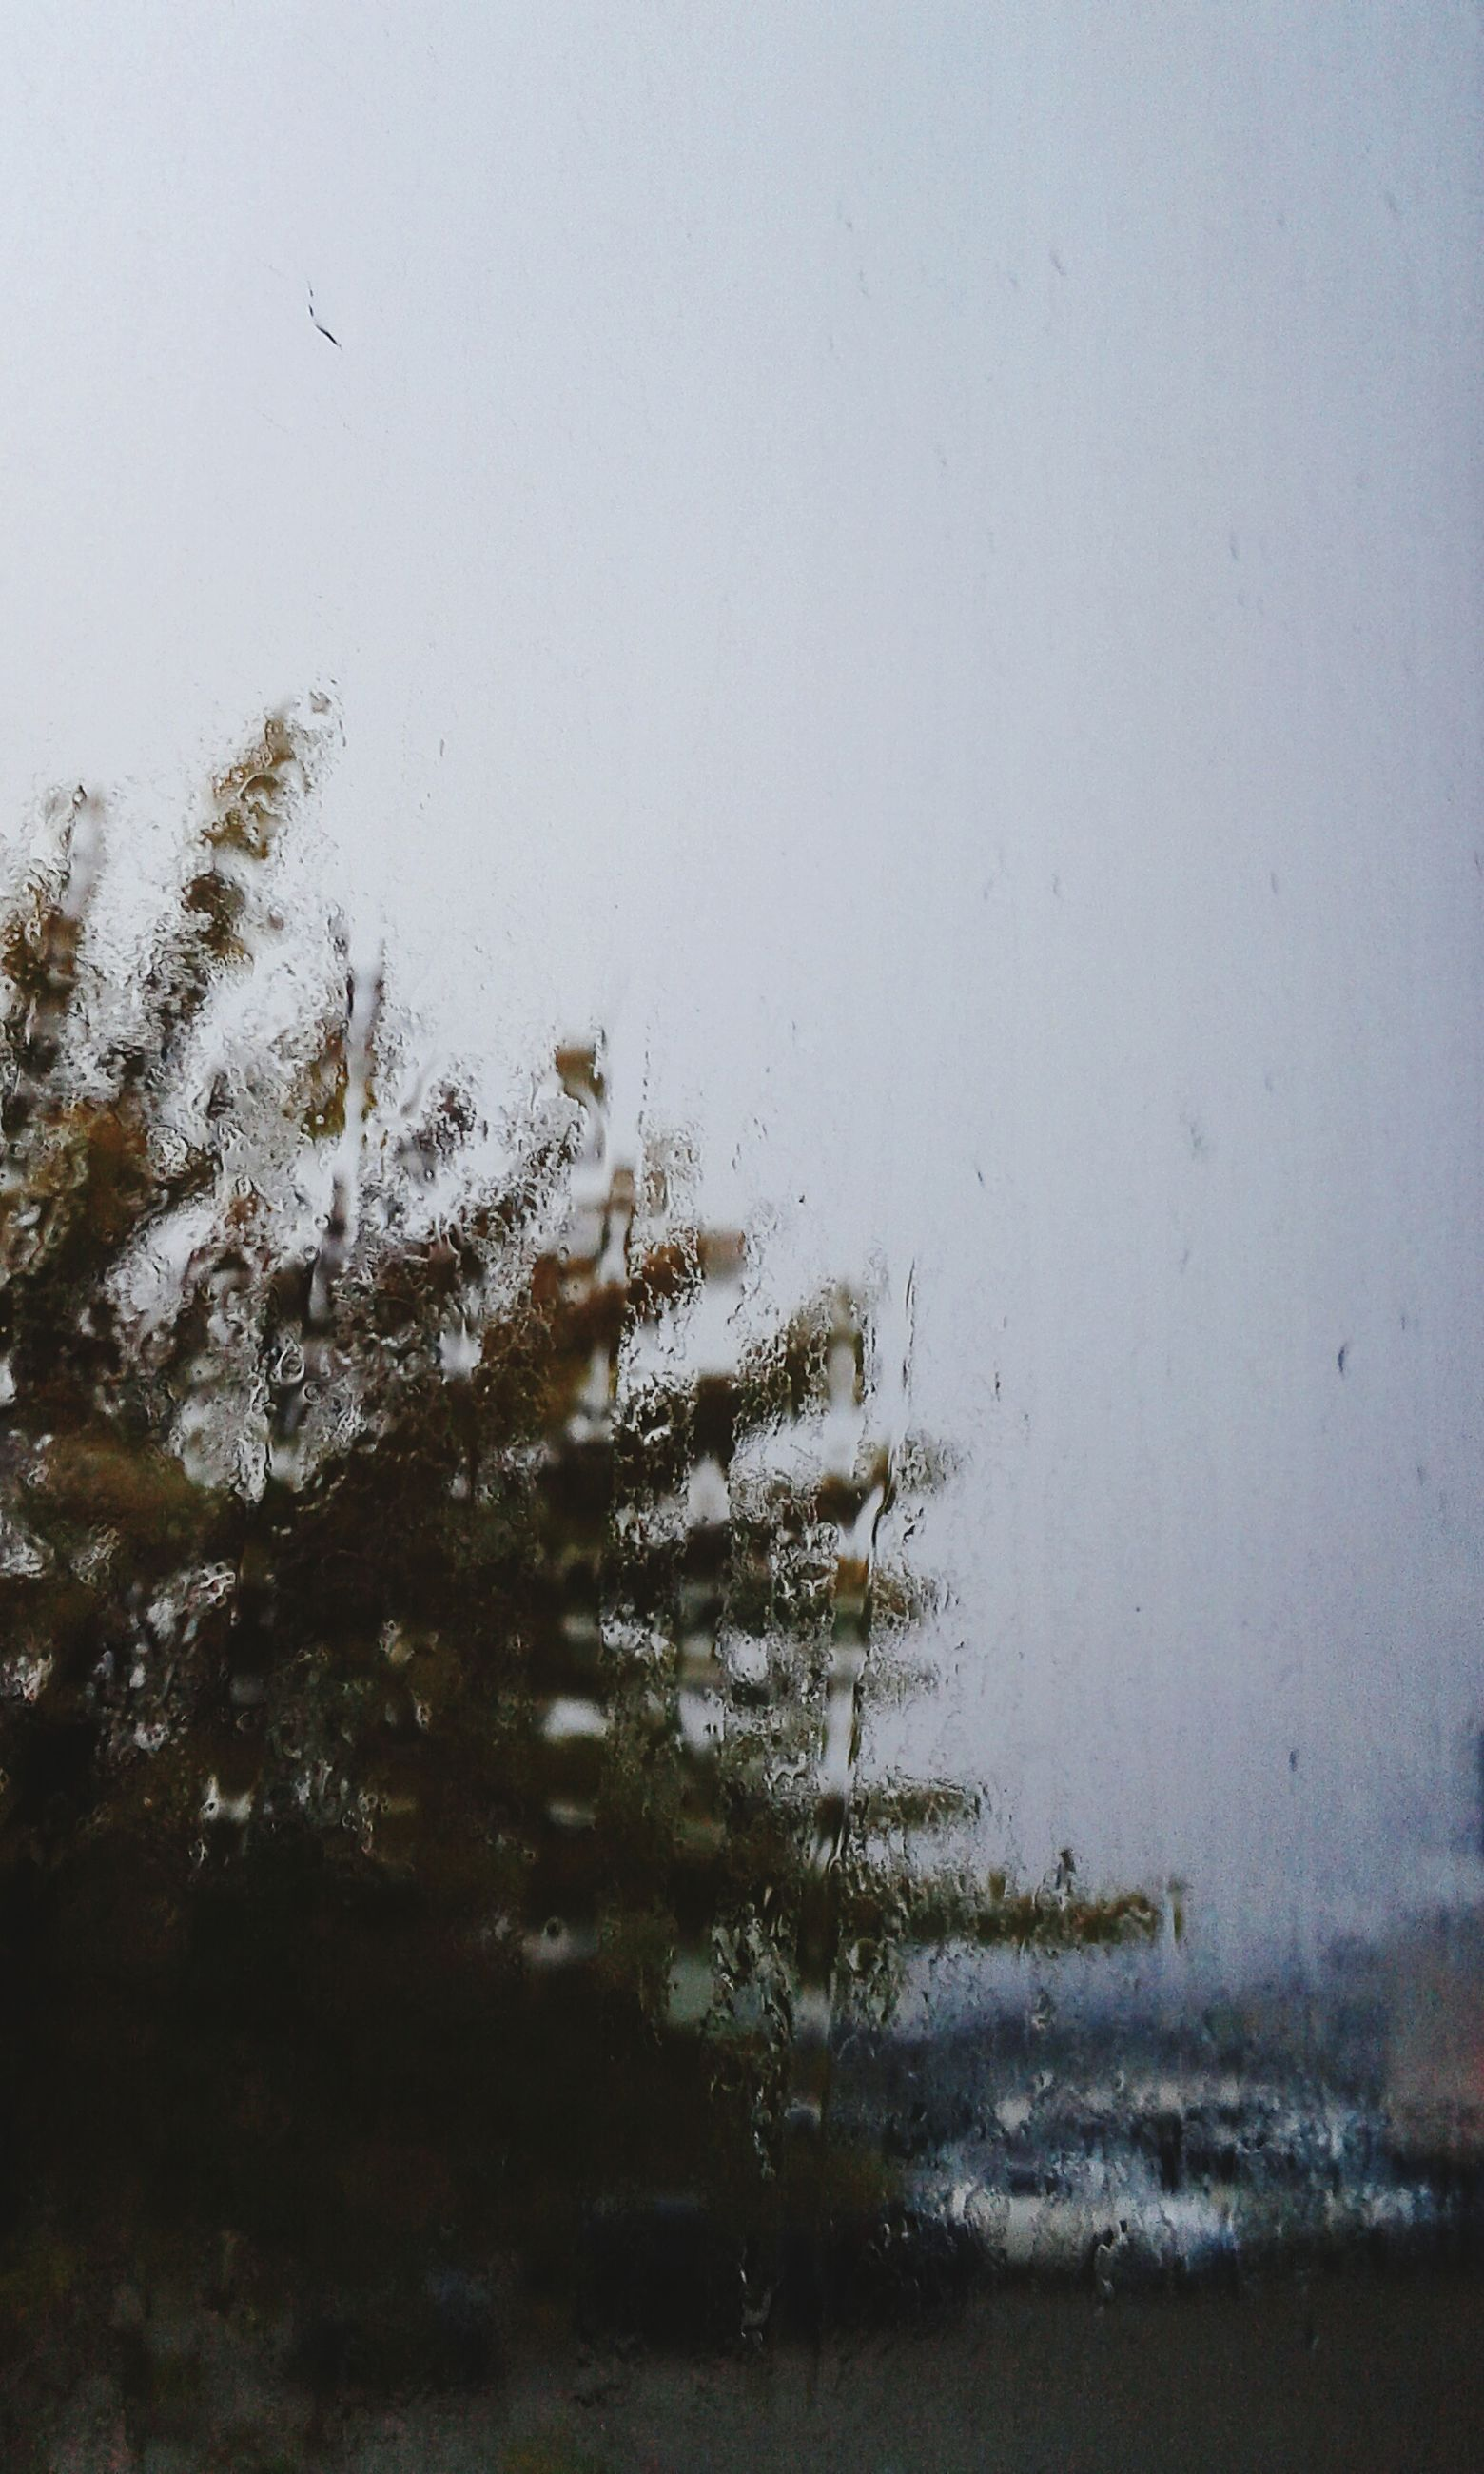 water, drop, wet, clear sky, weather, tree, nature, season, sky, rain, growth, tranquility, window, beauty in nature, transparent, day, copy space, no people, plant, glass - material